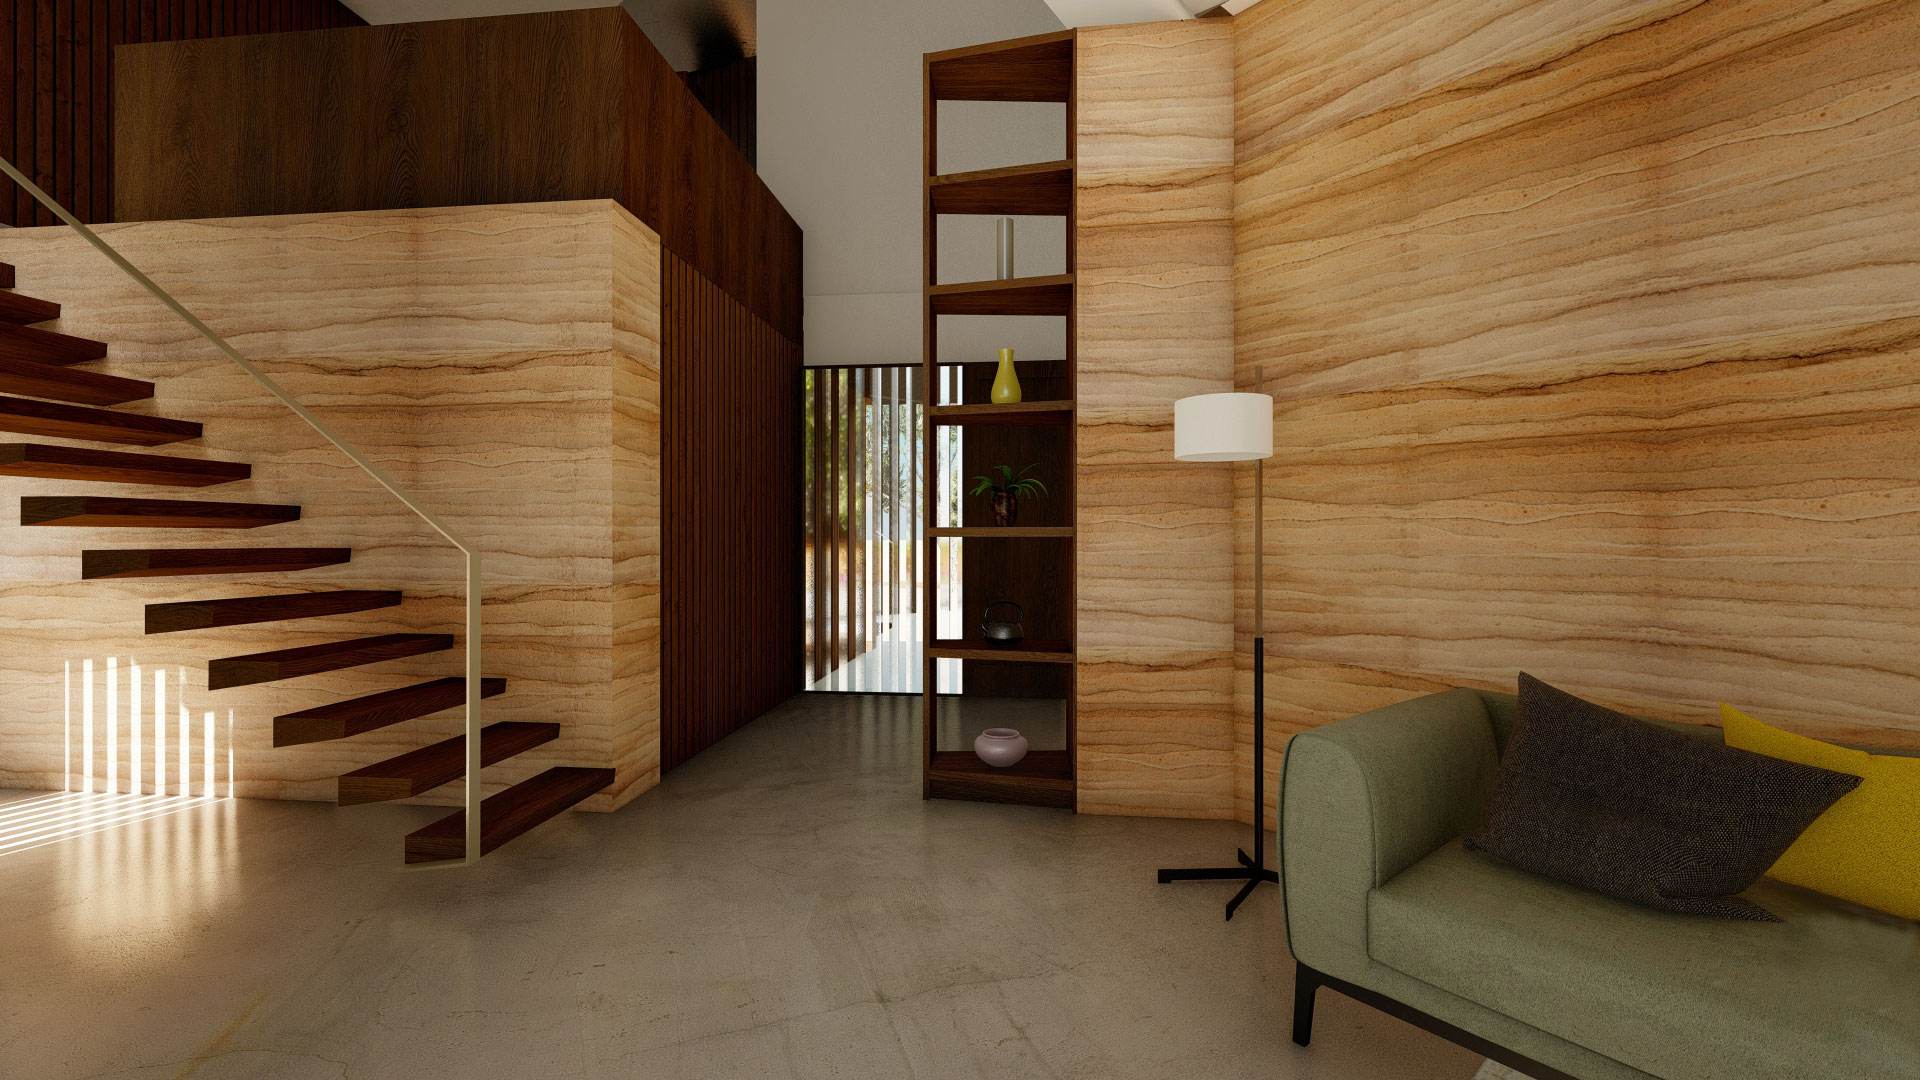 Rammed earth wall in passive house matarraña. Designed by Zest Architecture.